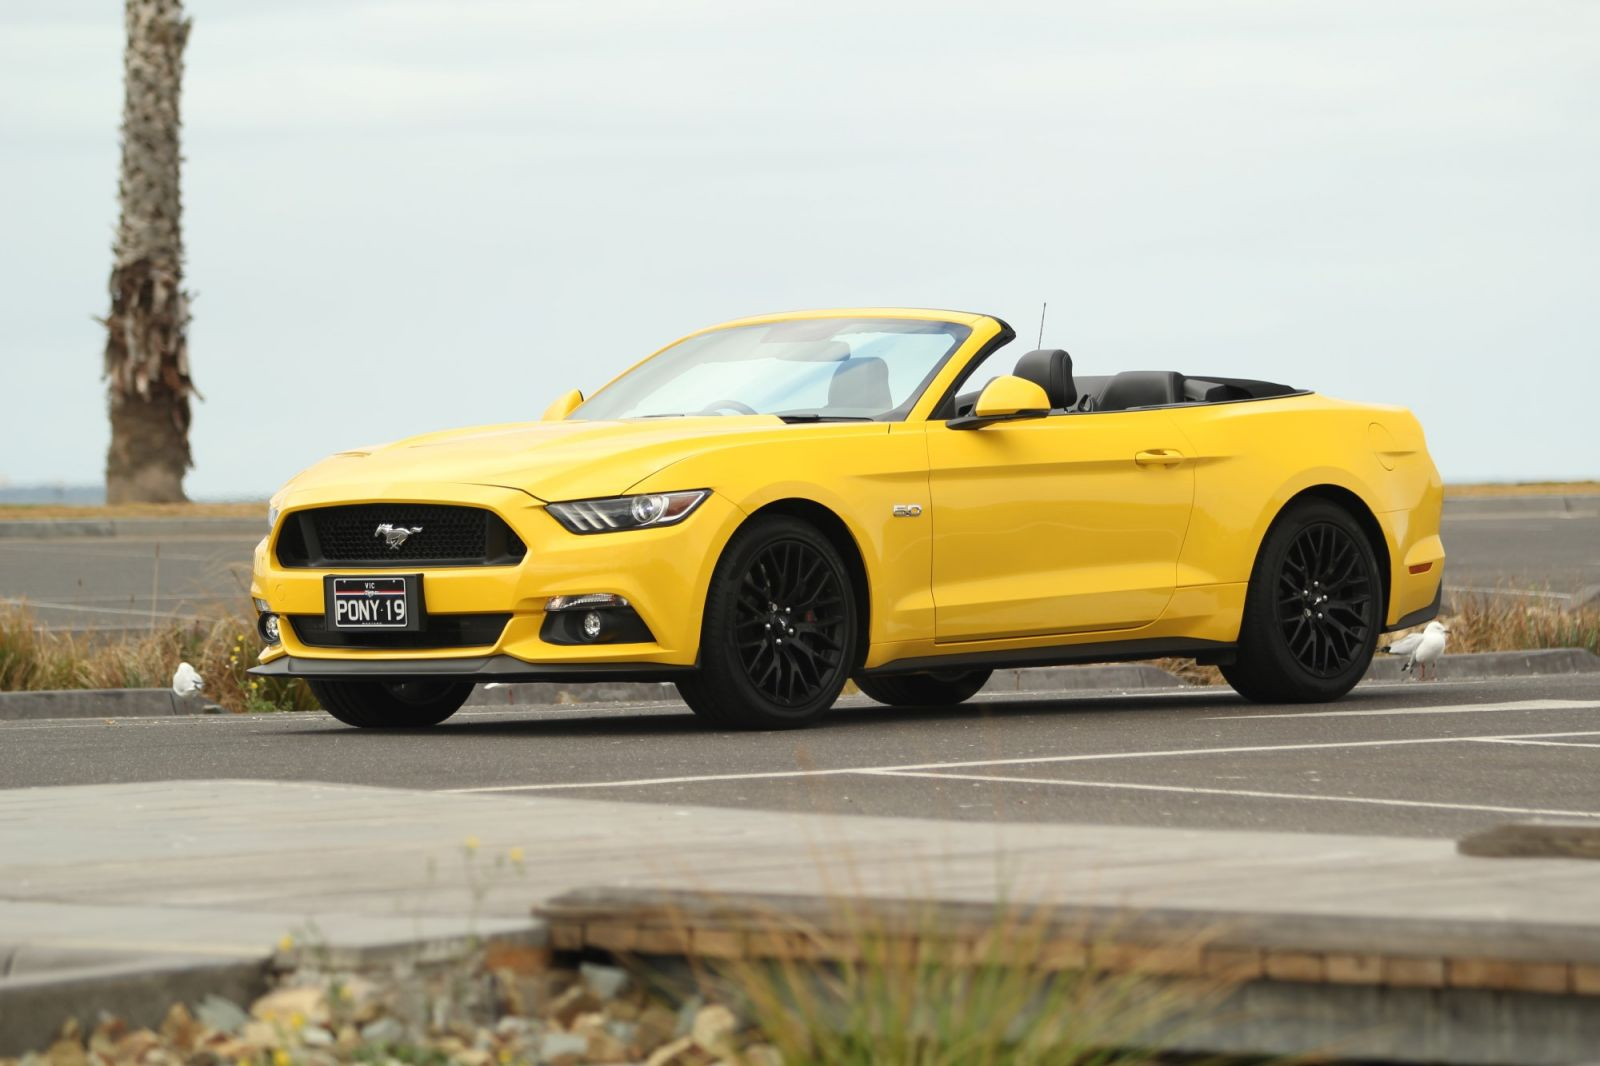 Jaguar XE And F-TYPE Recalled For Seatbelt Safety - Ford Mustang Recalled For Cable Clearance